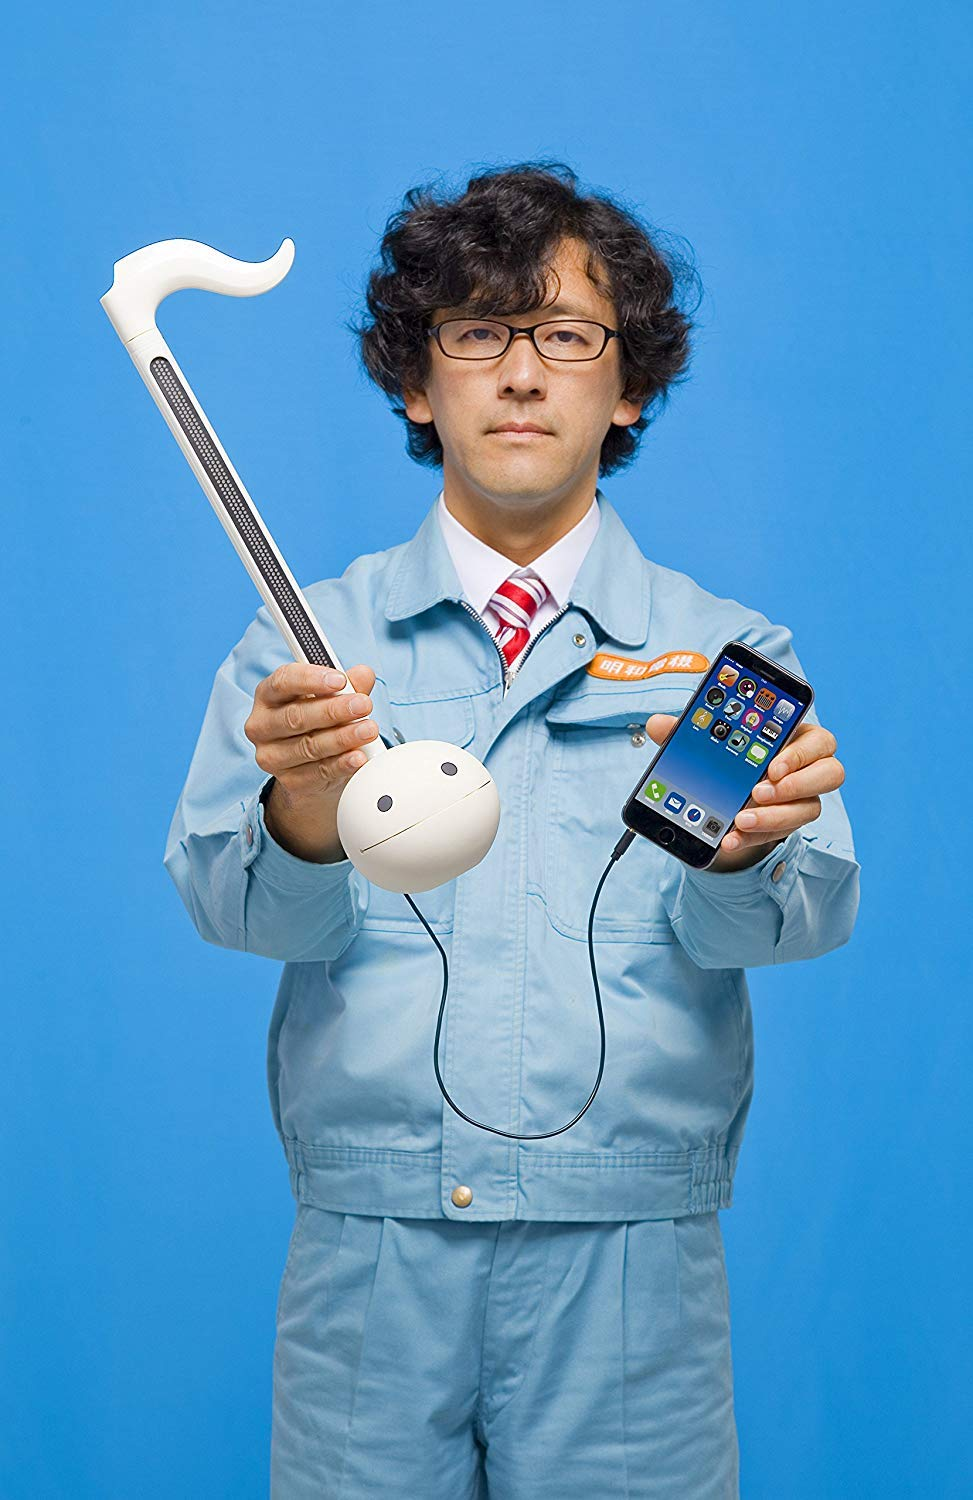 Otamatone ''Techno'' [Japanese Edition] Electronic Musical Instrument Synthesizer [Music Link connect] with a smartphone (iPhone and iPad iOS / Android App) from Japan by Cube / Maywa Denki, White by Otamatone (Image #3)